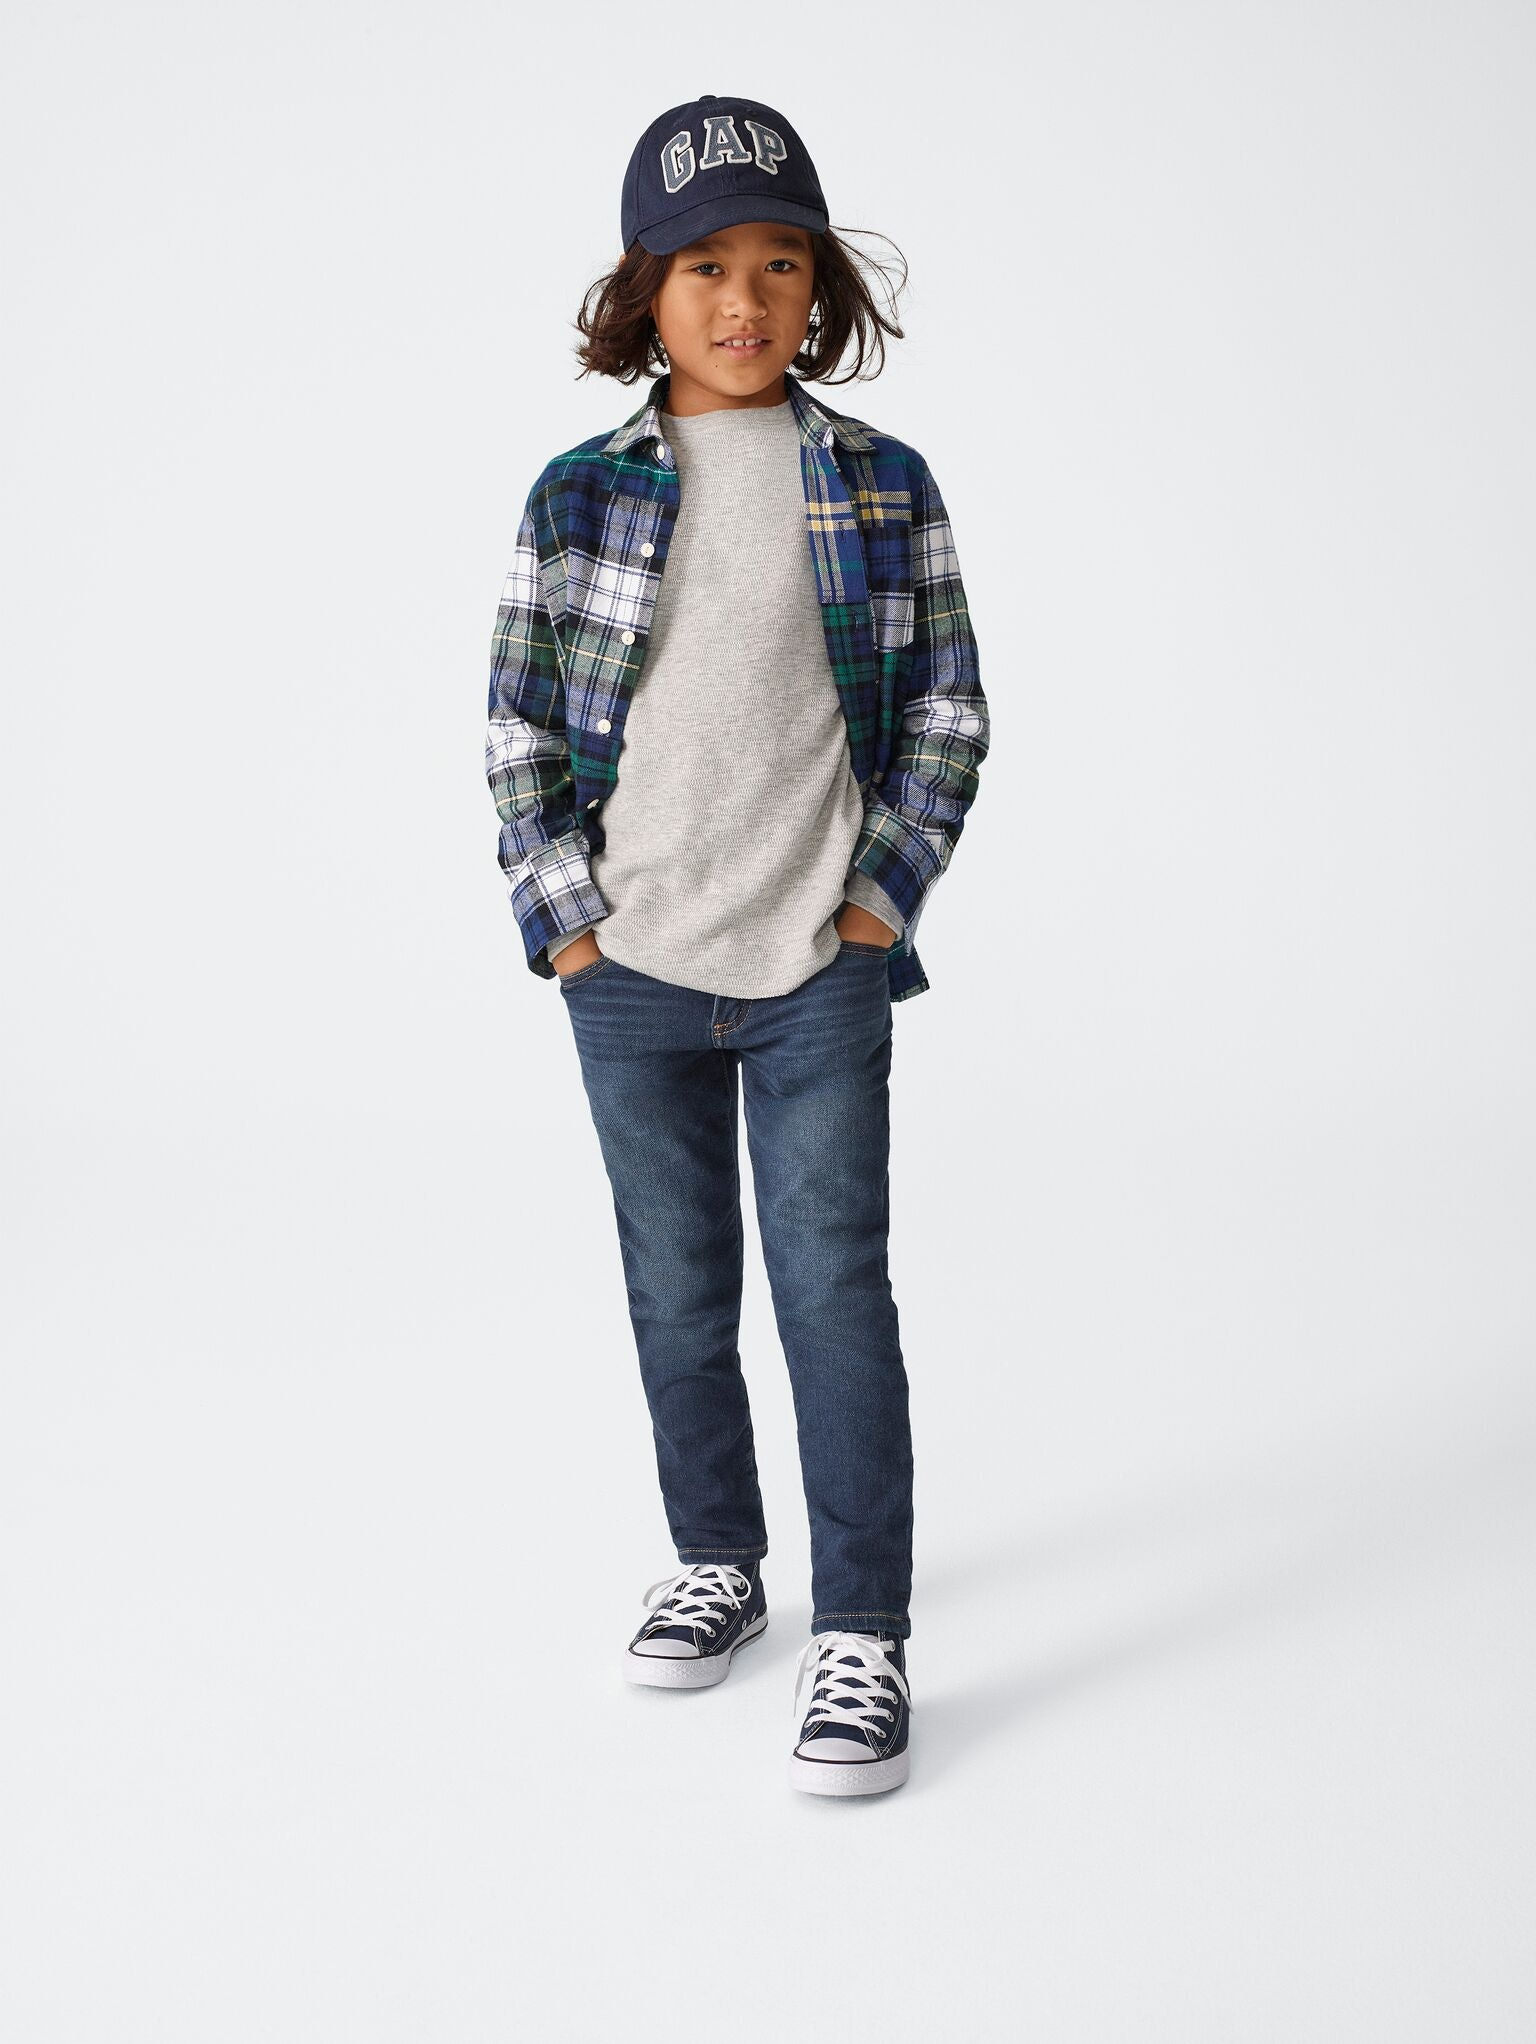 124cfd2a31 Sarah Jessica Parker's New Gap Kids Collection Is Here, & It's As Adorable  As You'd Expect It To Be